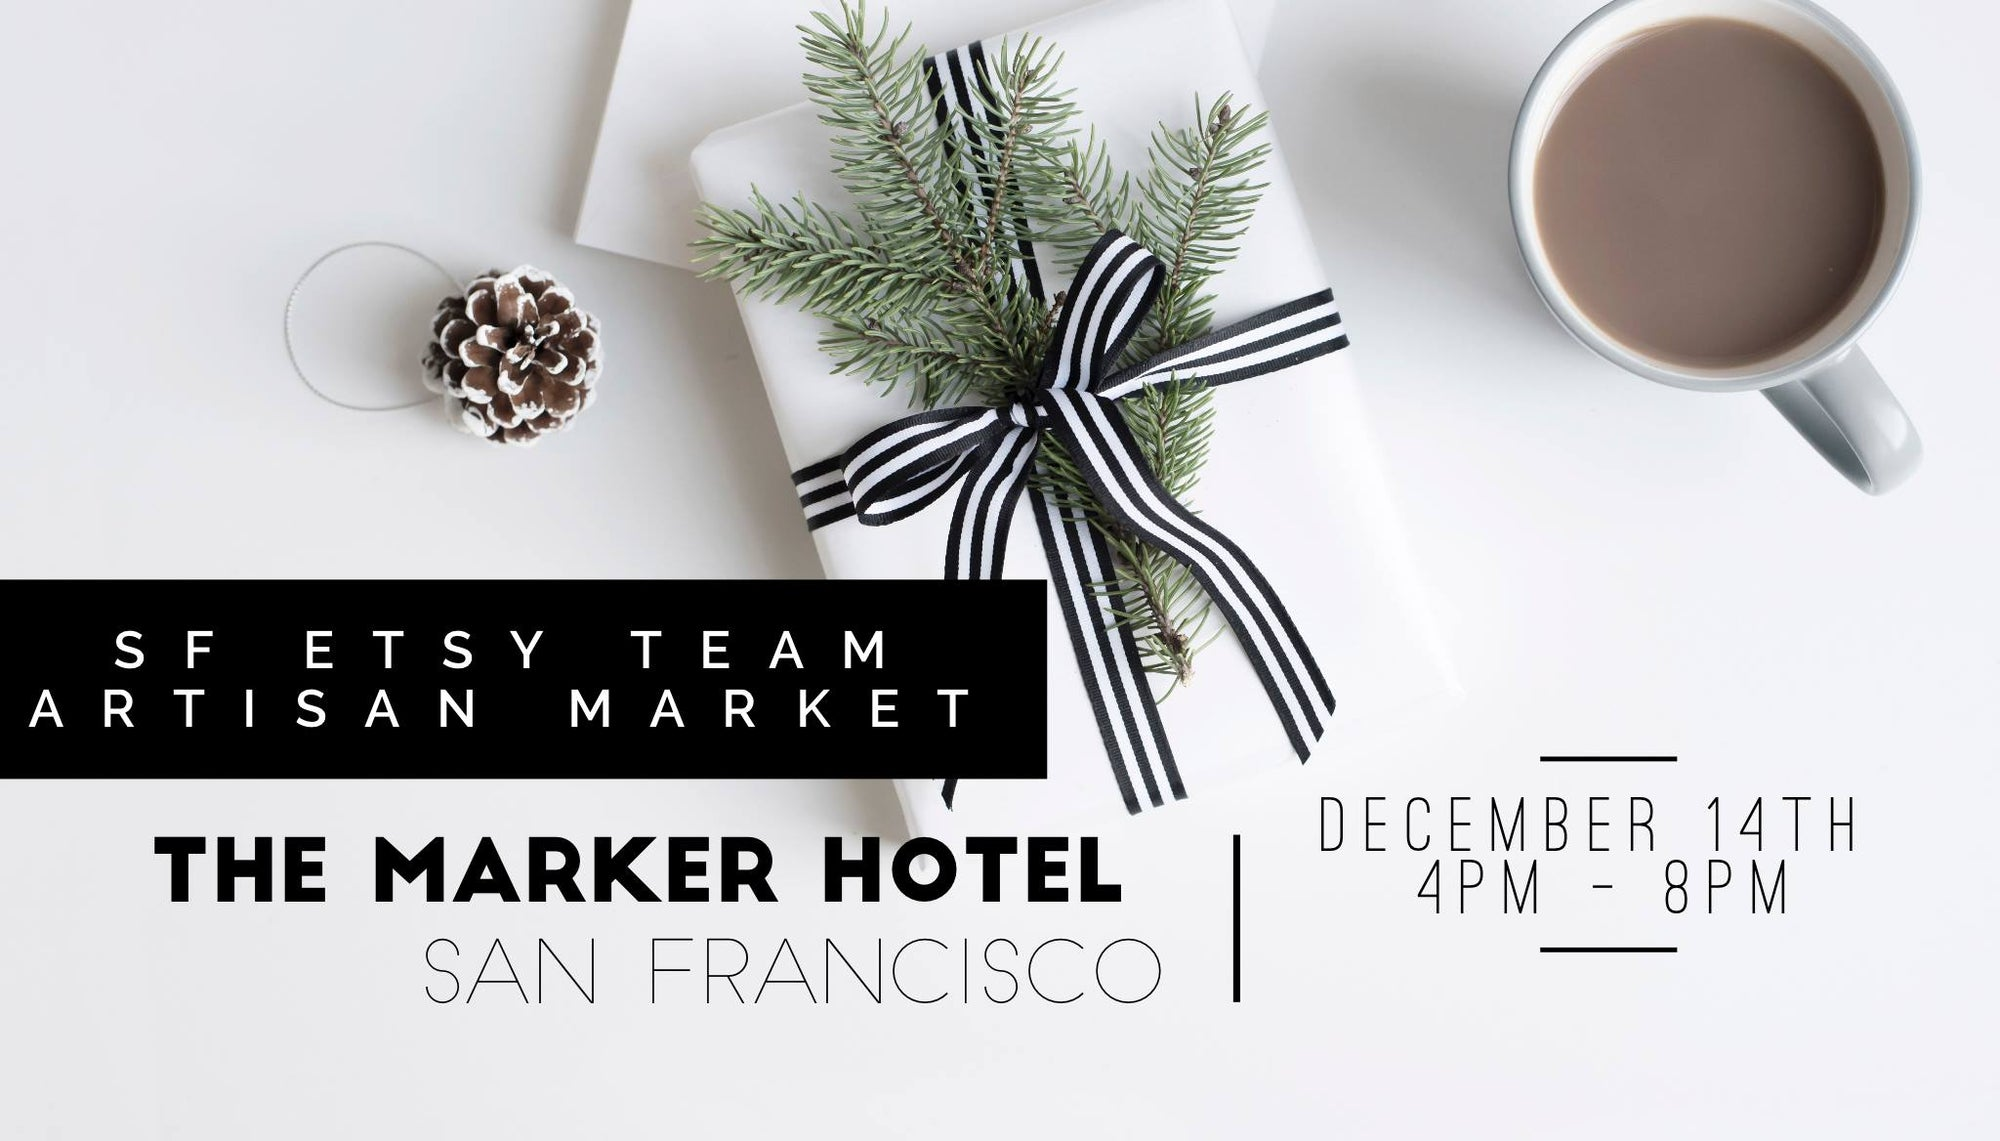 We're going to The Marker and Tratto Host SF Etsy Pop-up Event on December 14th Shop Local, Handmade Gifts by SF Etsy Artists This Holiday Season